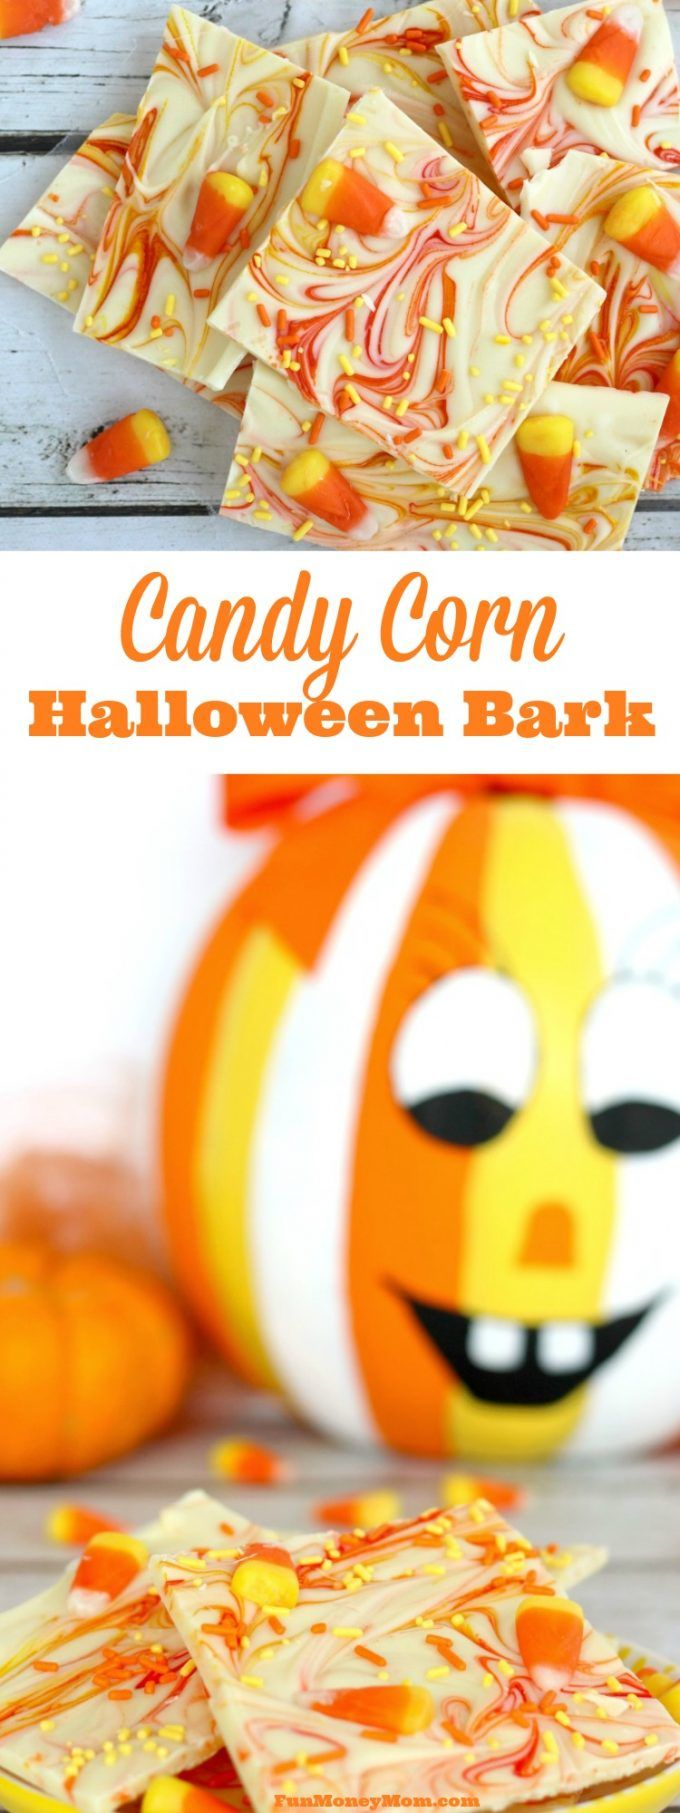 I just can't stay away from the candy corn! Now I've made this delicious (and super easy) Candy Corn Halloween Bark....you'll definitely want to try it!